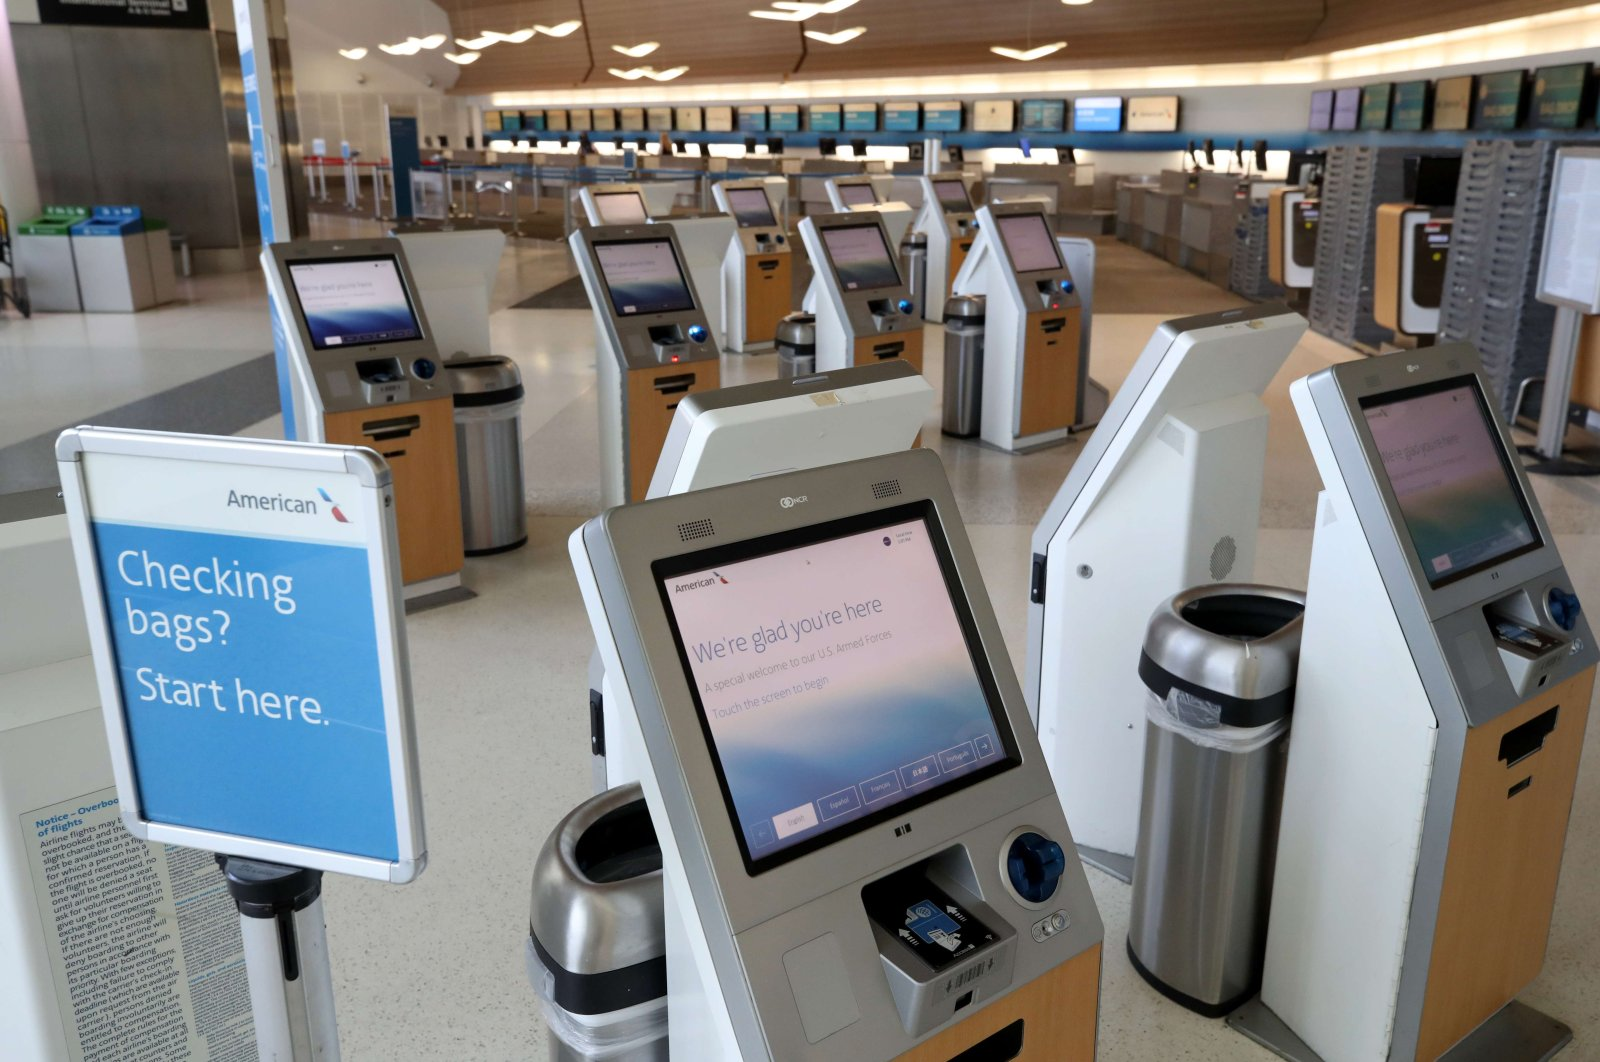 The American Airlines ticket counter sits empty at San Francisco International Airport on April 2, 2020, in San Francisco, California. Due to a reduction of flights and people traveling, San Francisco International Airport has consolidated all of its terminals into one concourse in the international terminal. (AFP Photo)